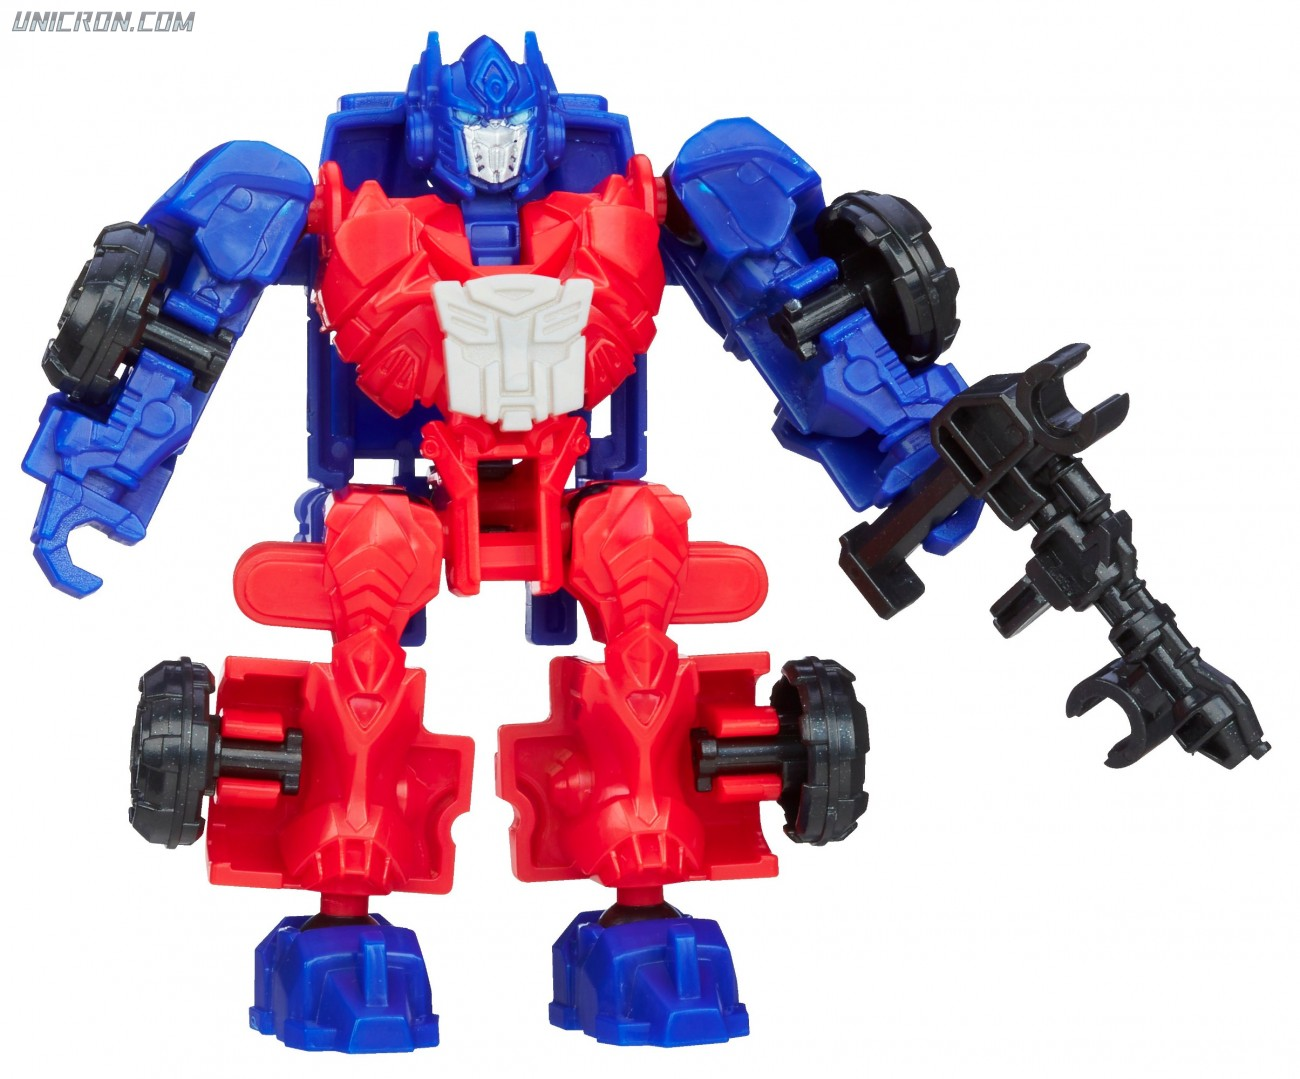 Transformers Construct-Bots Optimus Prime - Construct-Bots, Dino Riders toy